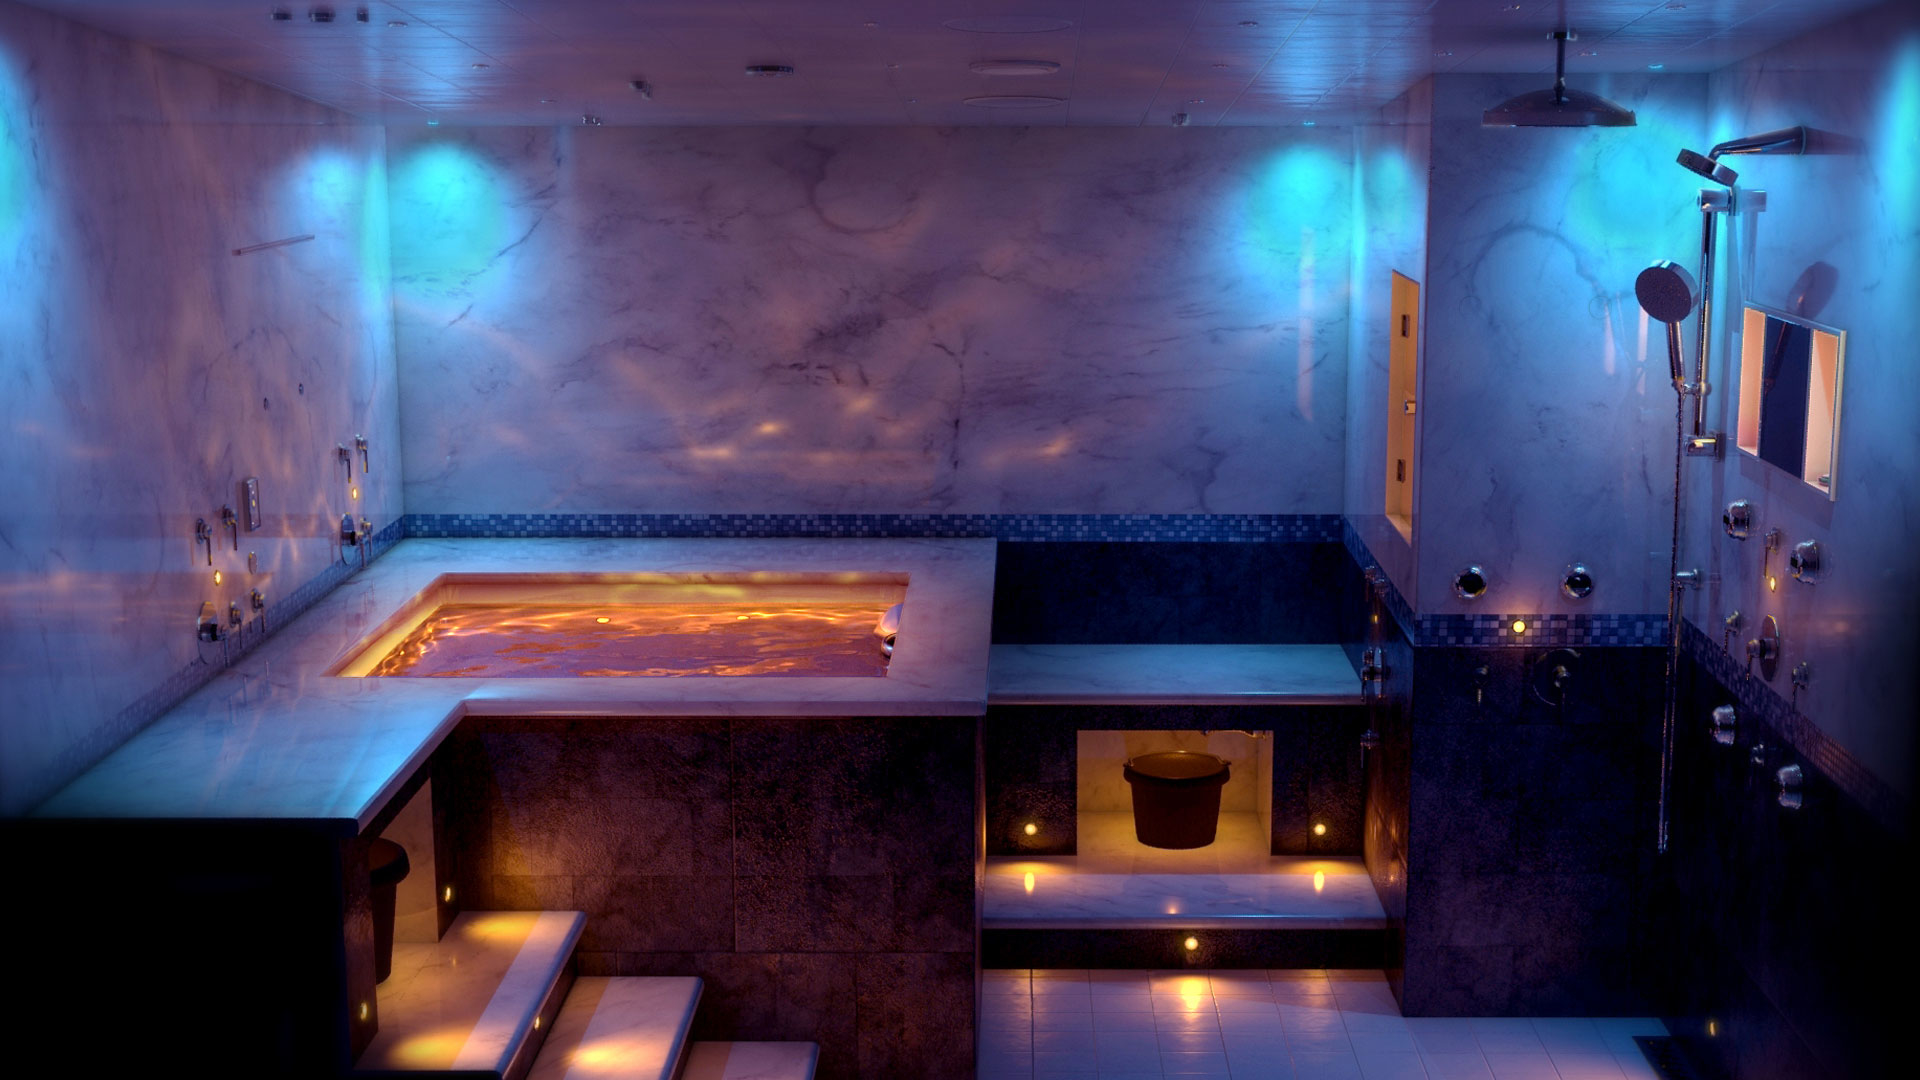 Mccarthy steam and sauna bath fort worth texas tx for Steam room design plans